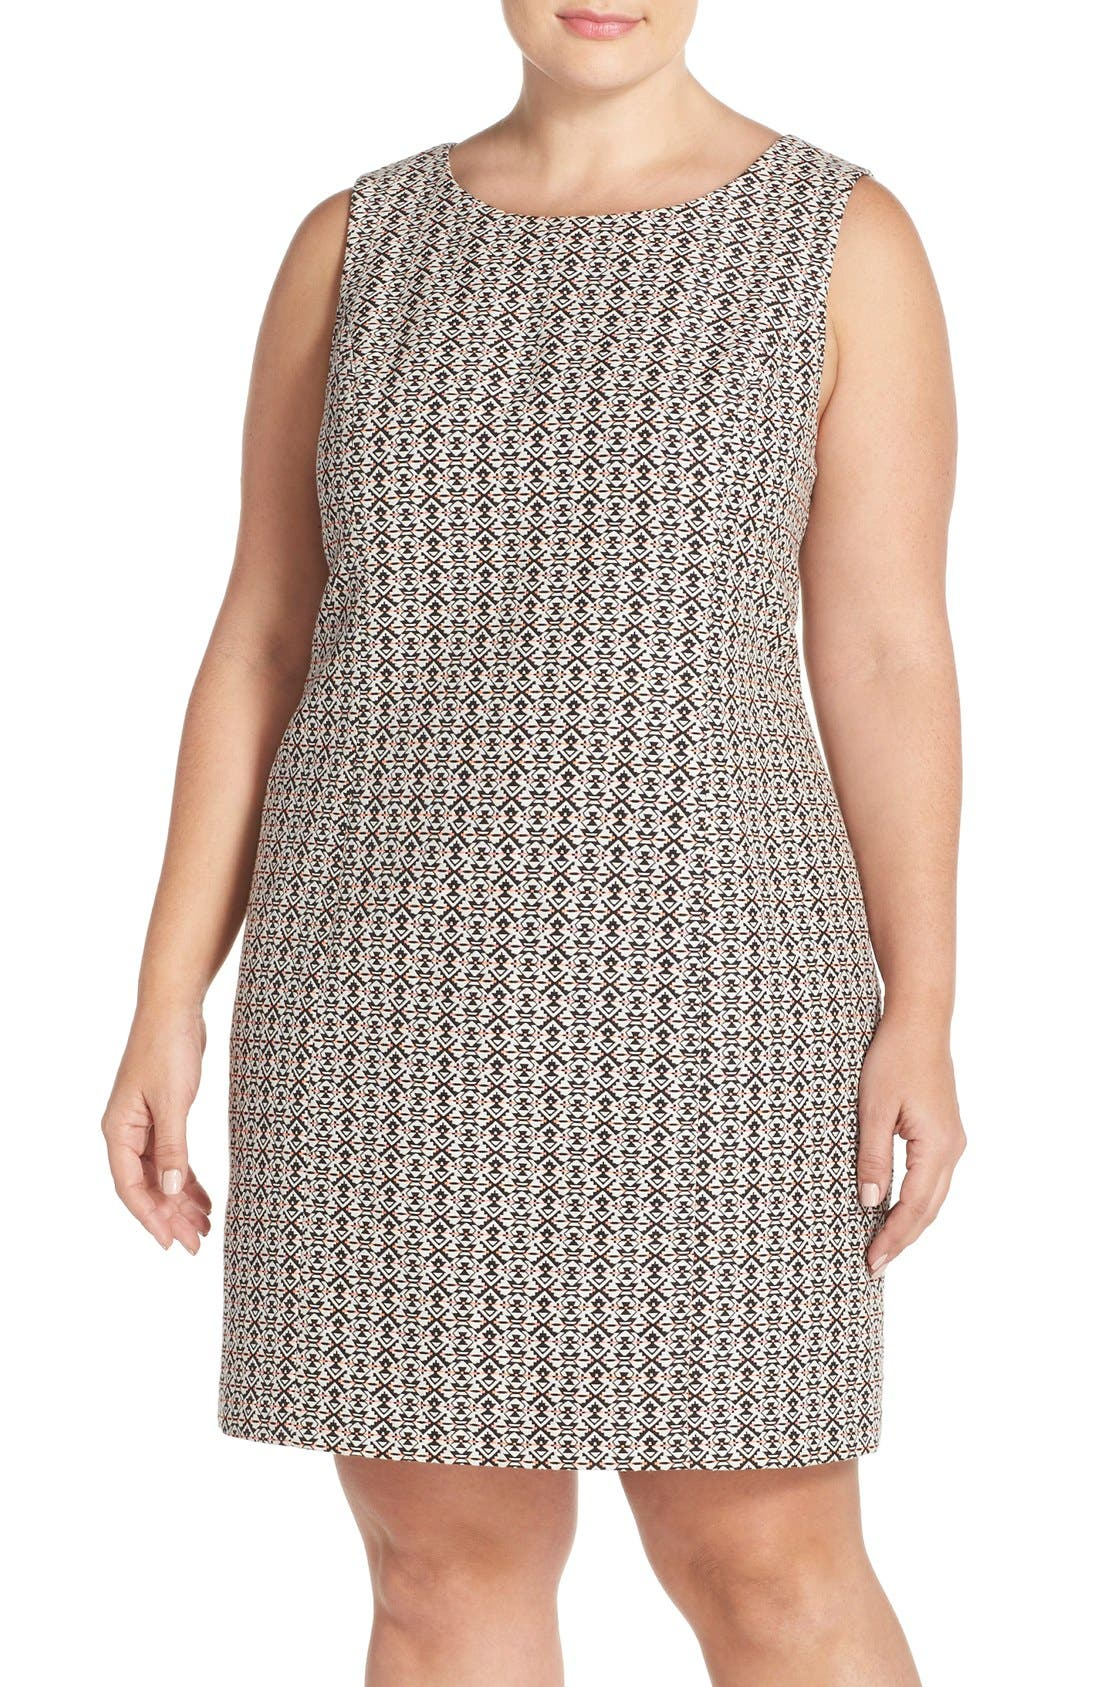 Tart 'Dinah' Print Sleeveless Sheath Dress (Plus Size)